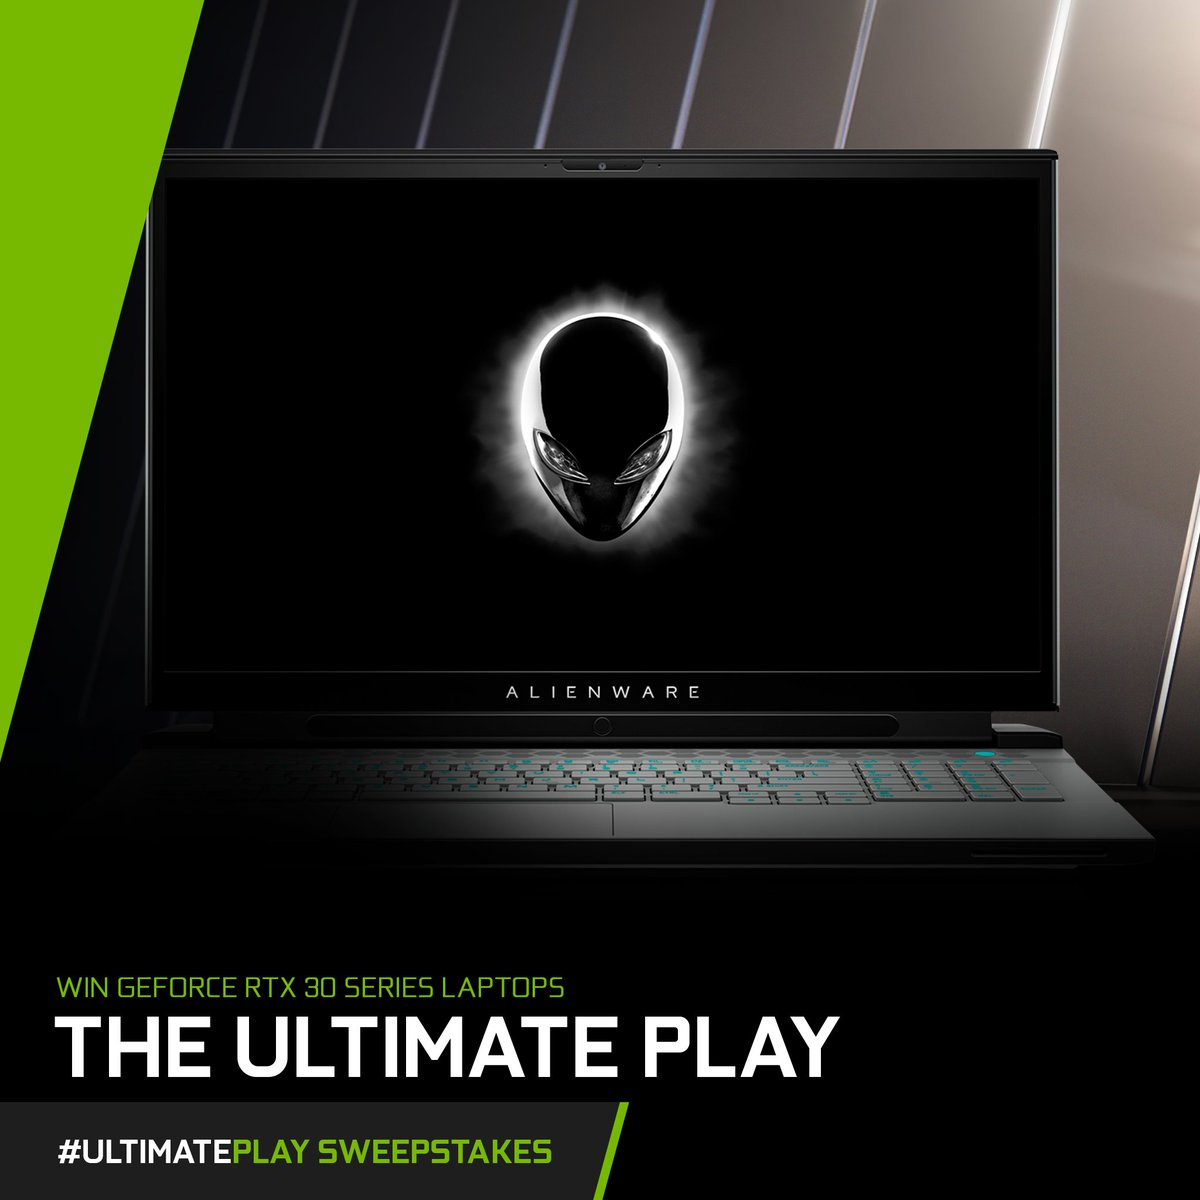 Today's #UltimatePlay Laptop Spotlight: The #Alienware m17 R4   Key Features:   ⚪ NVIDIA GeForce RTX 30 Series GPU ⚪ 360 Hz Display ⚪ 2933 Mhz DDR4 Memory   Want a chance to win it?   1. RT this post 2. Tell us your favorite video game Alien in the replies w/ #UltimatePlay!